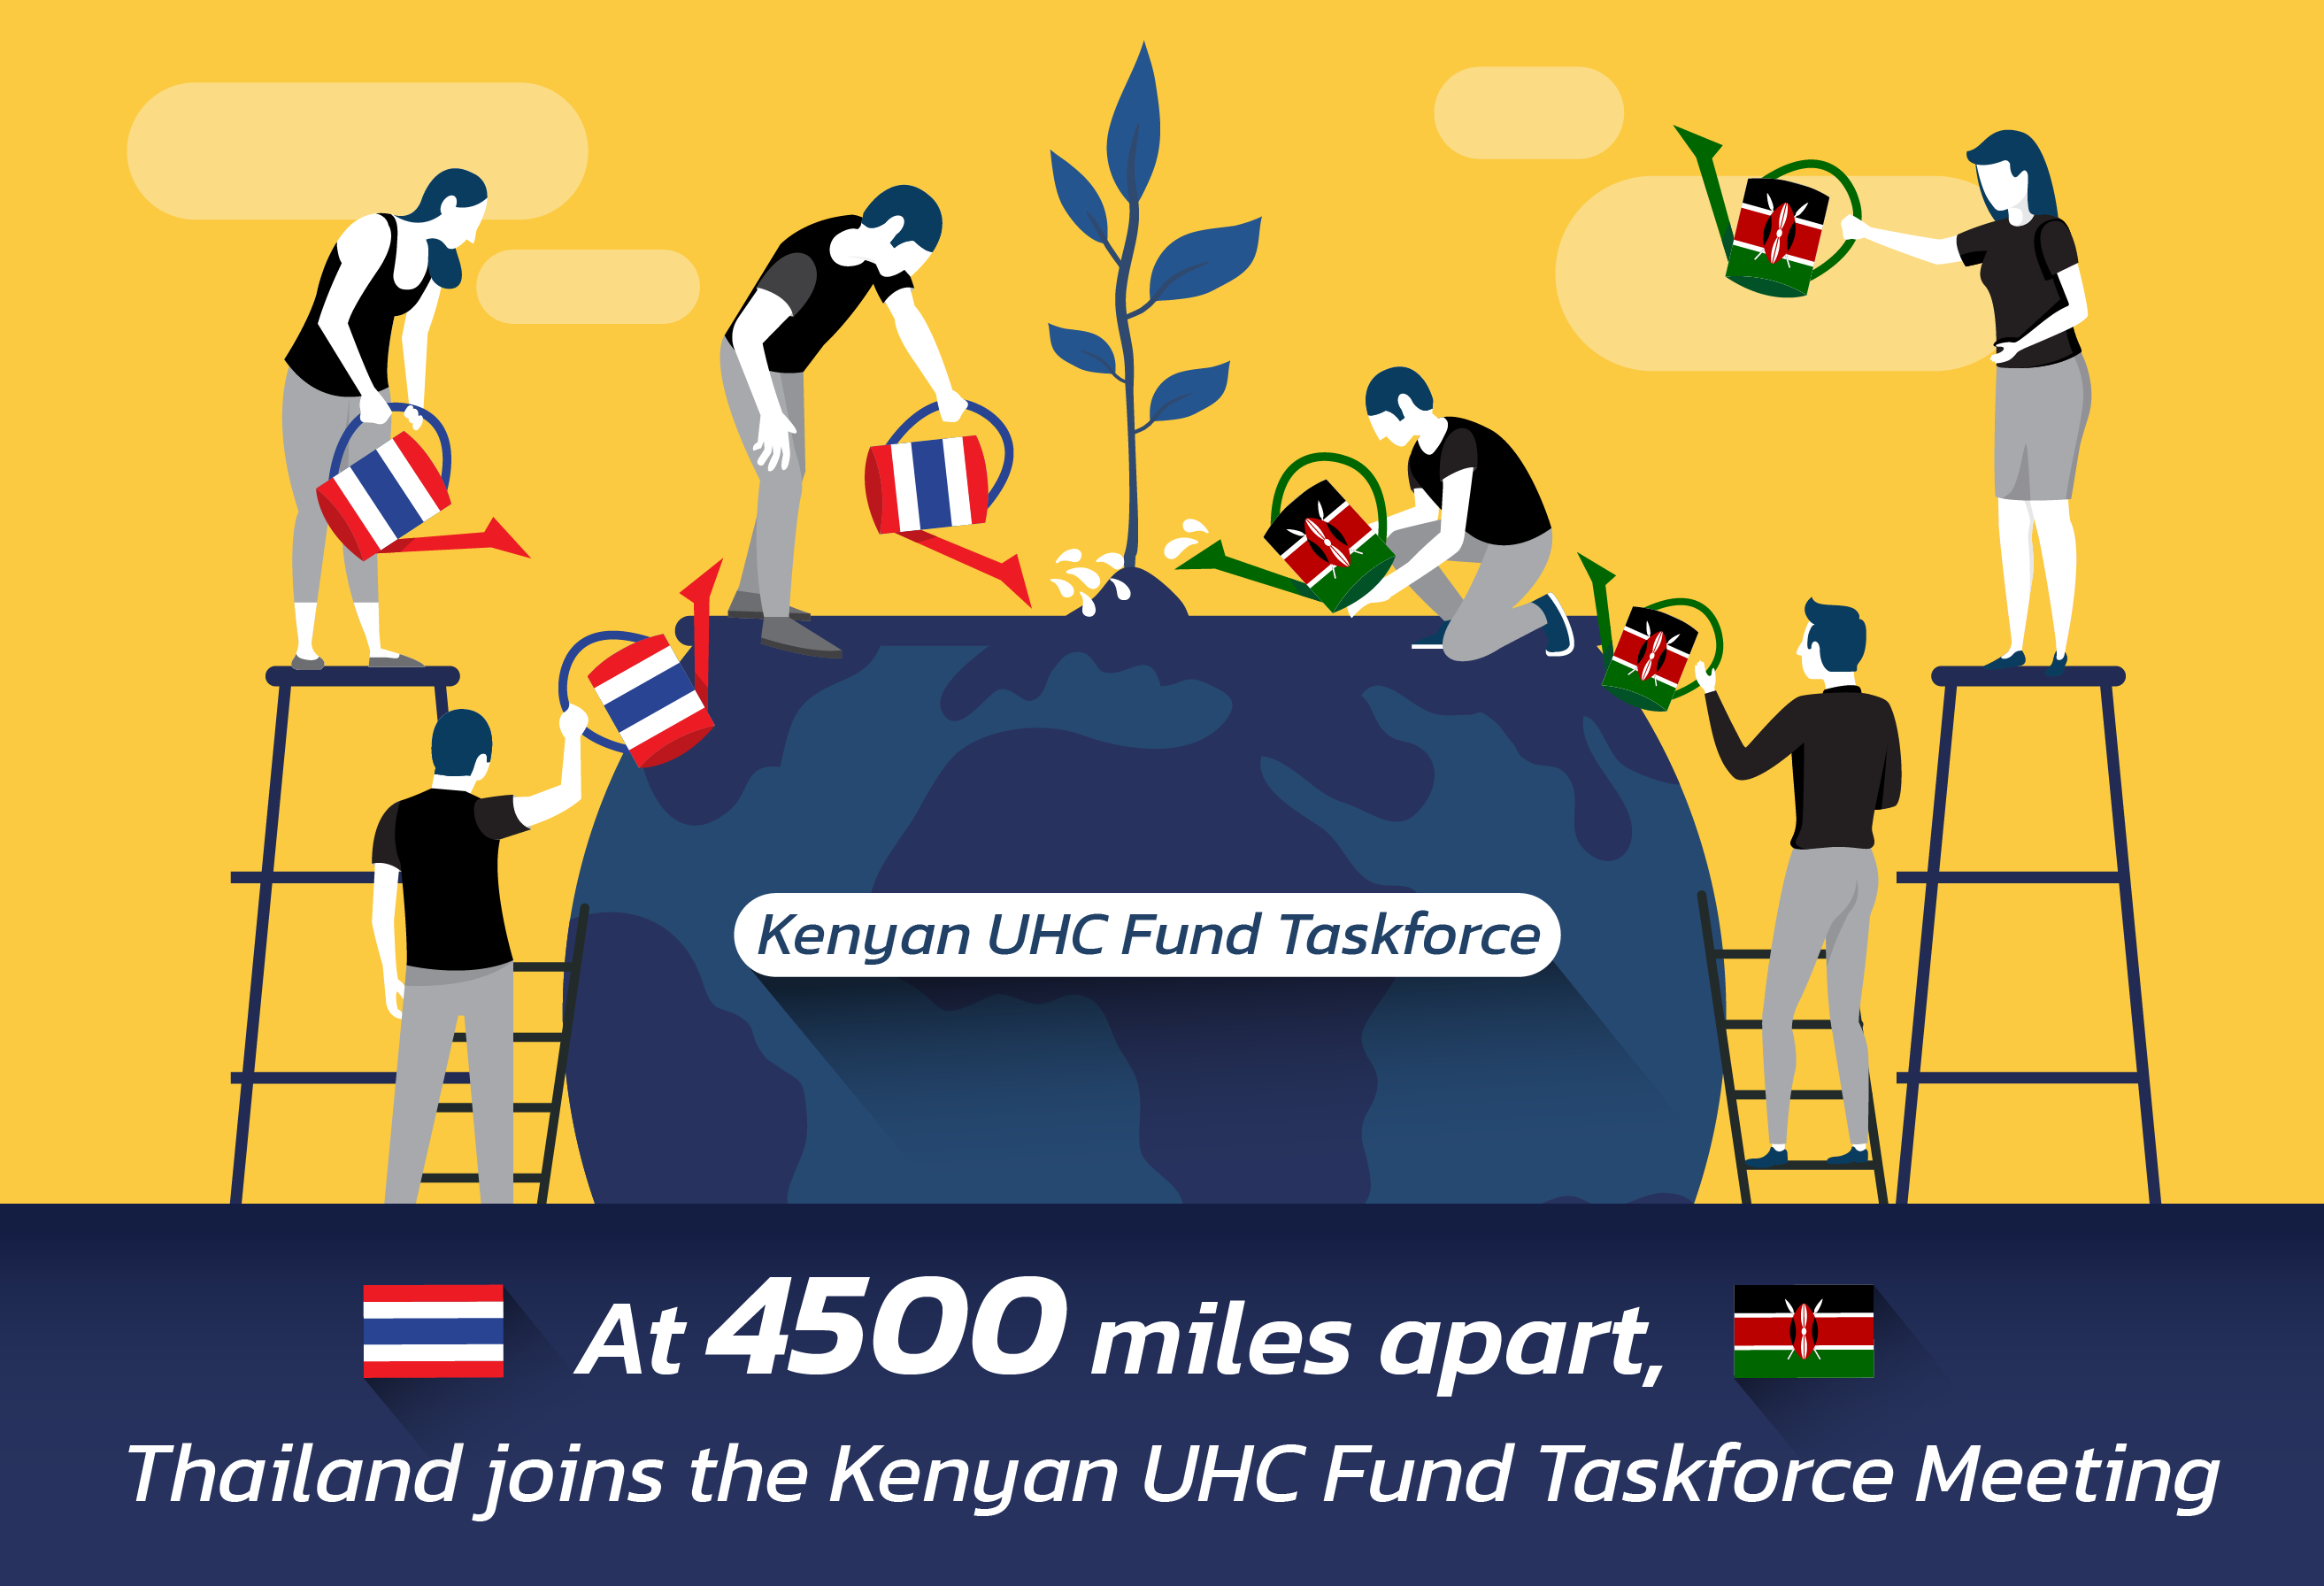 At 4500 miles apart, Thailand joins the Kenyan UHC Fund Taskforce Meeting